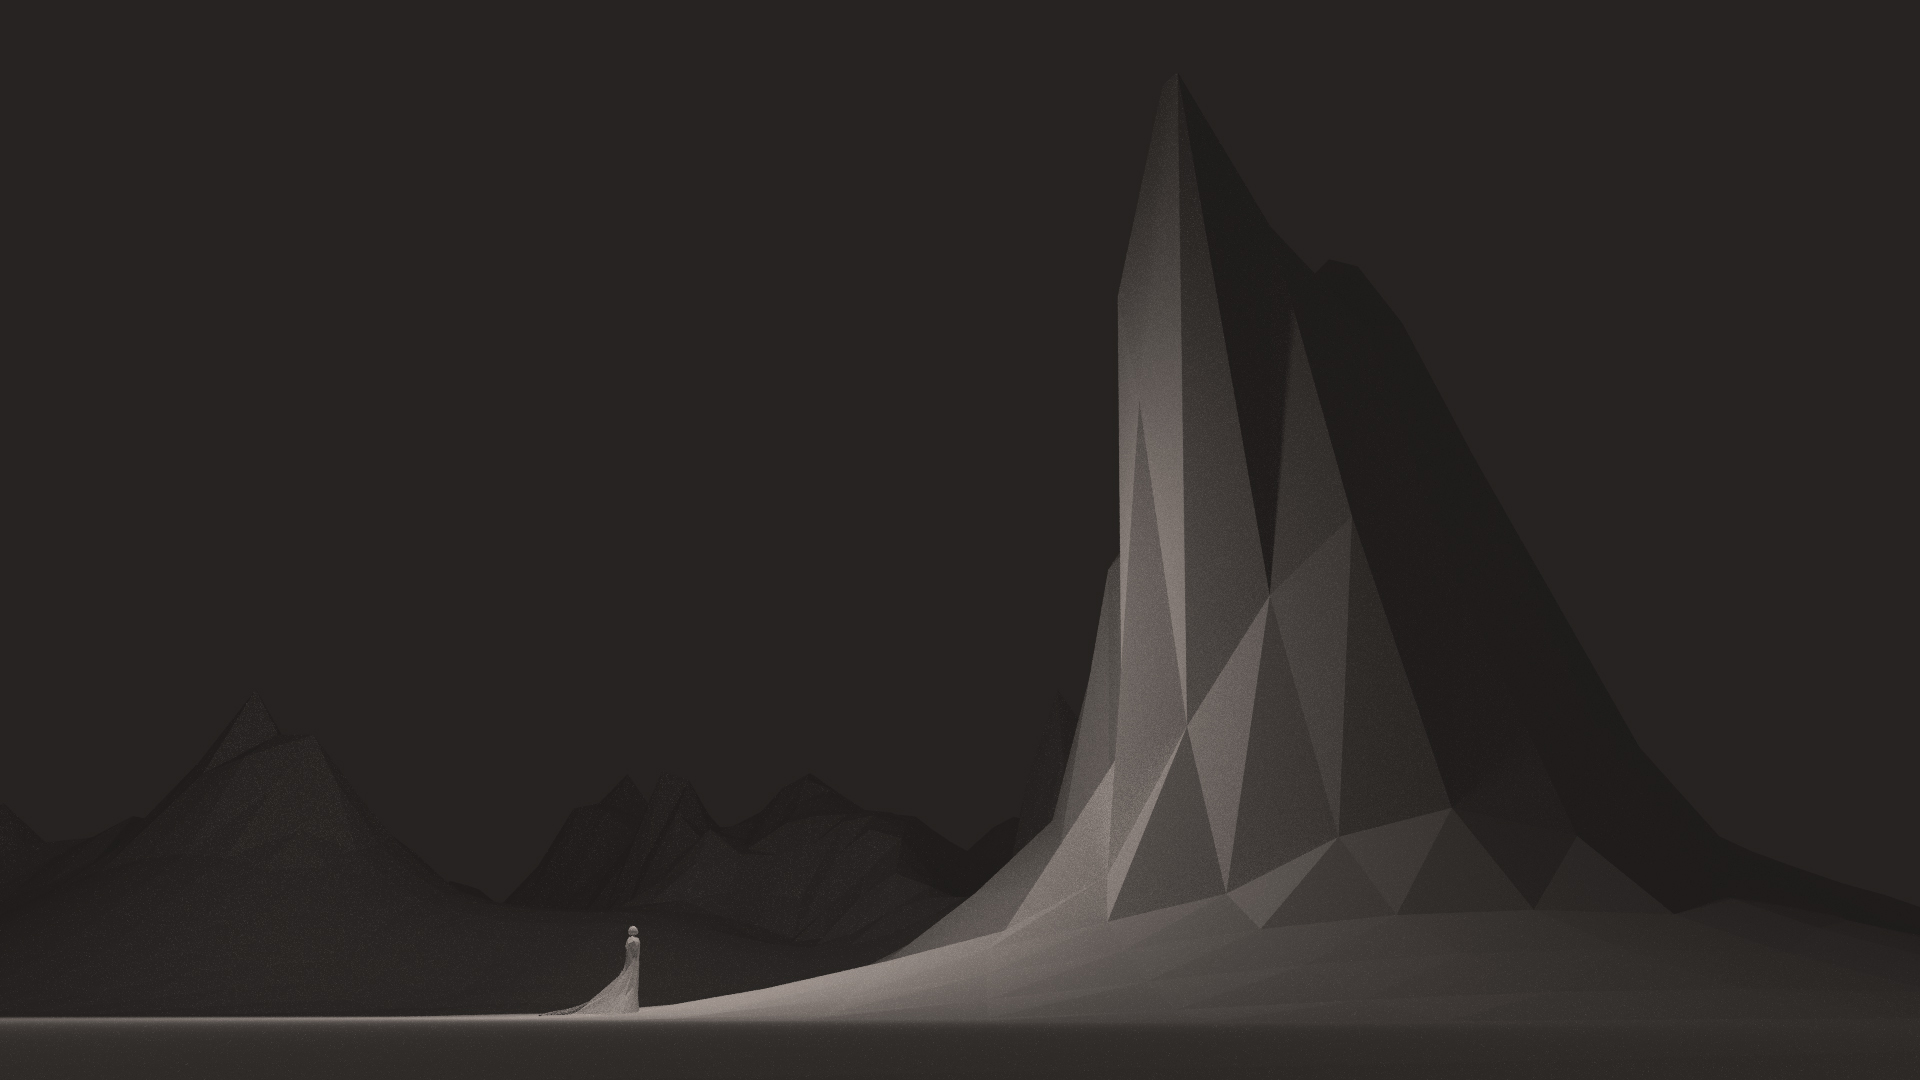 A low-poly rendition of a small figure facing a tall mountain.